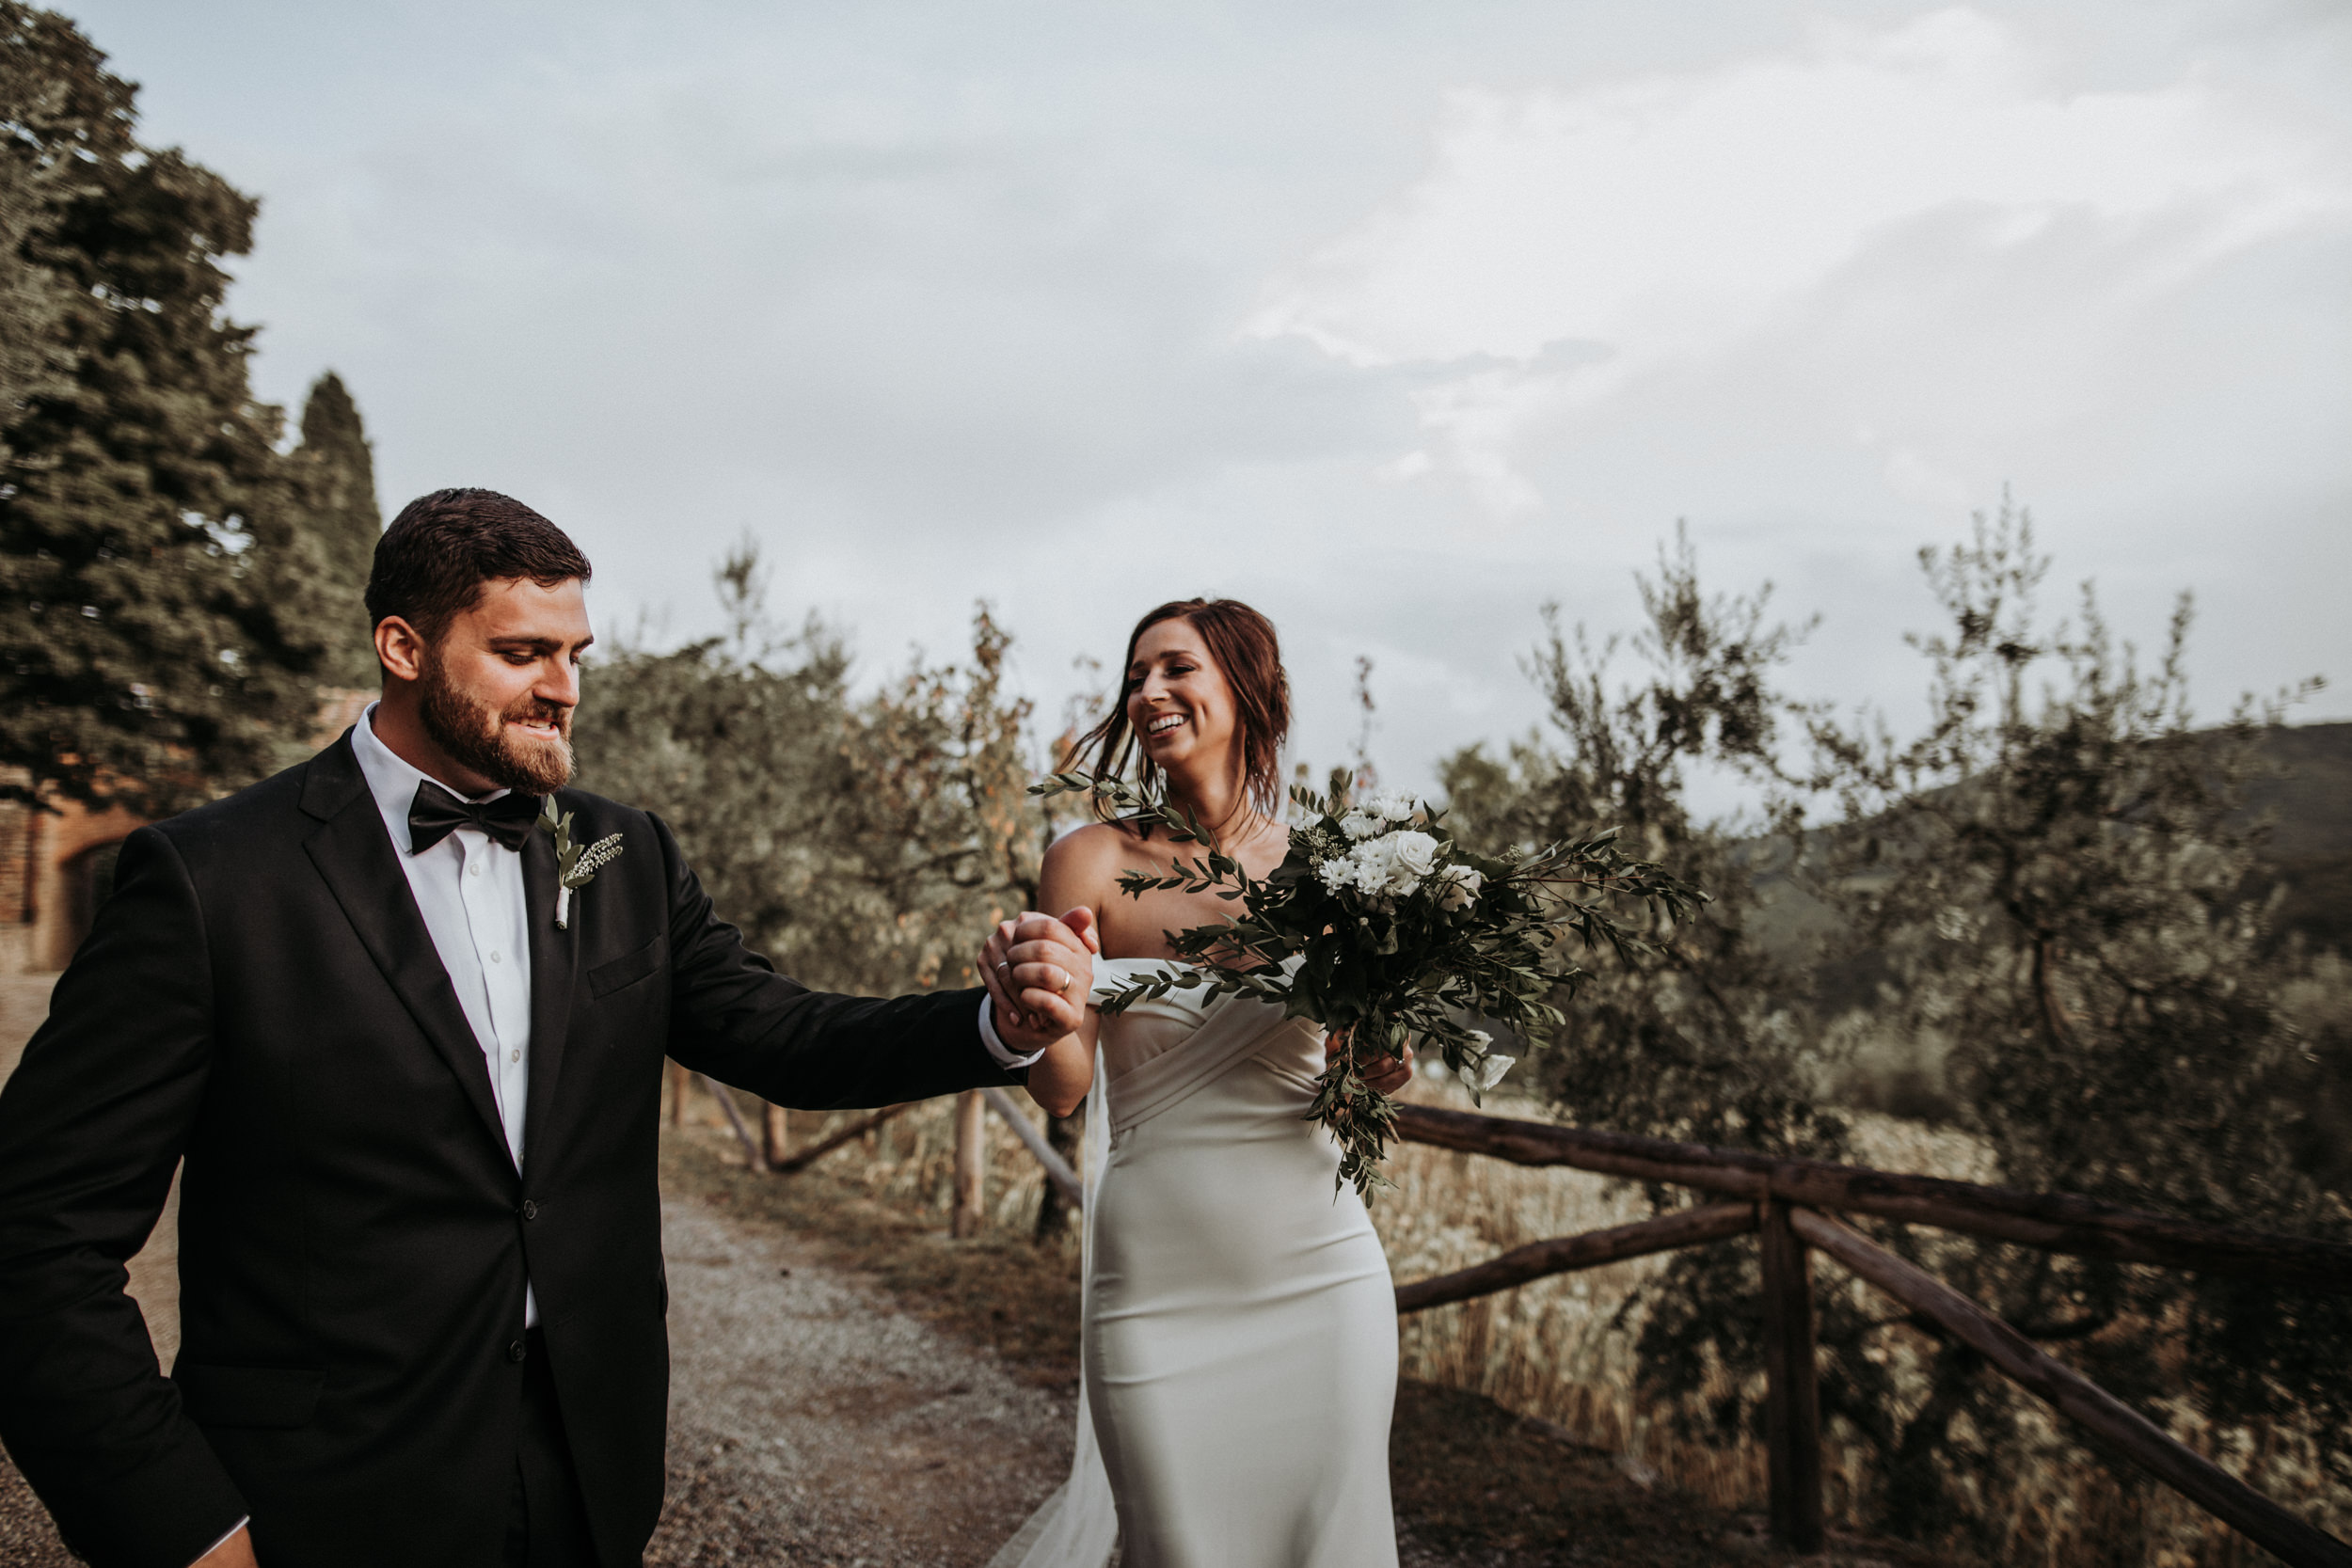 dm_photography_KW_Tuscanyweddingday_352